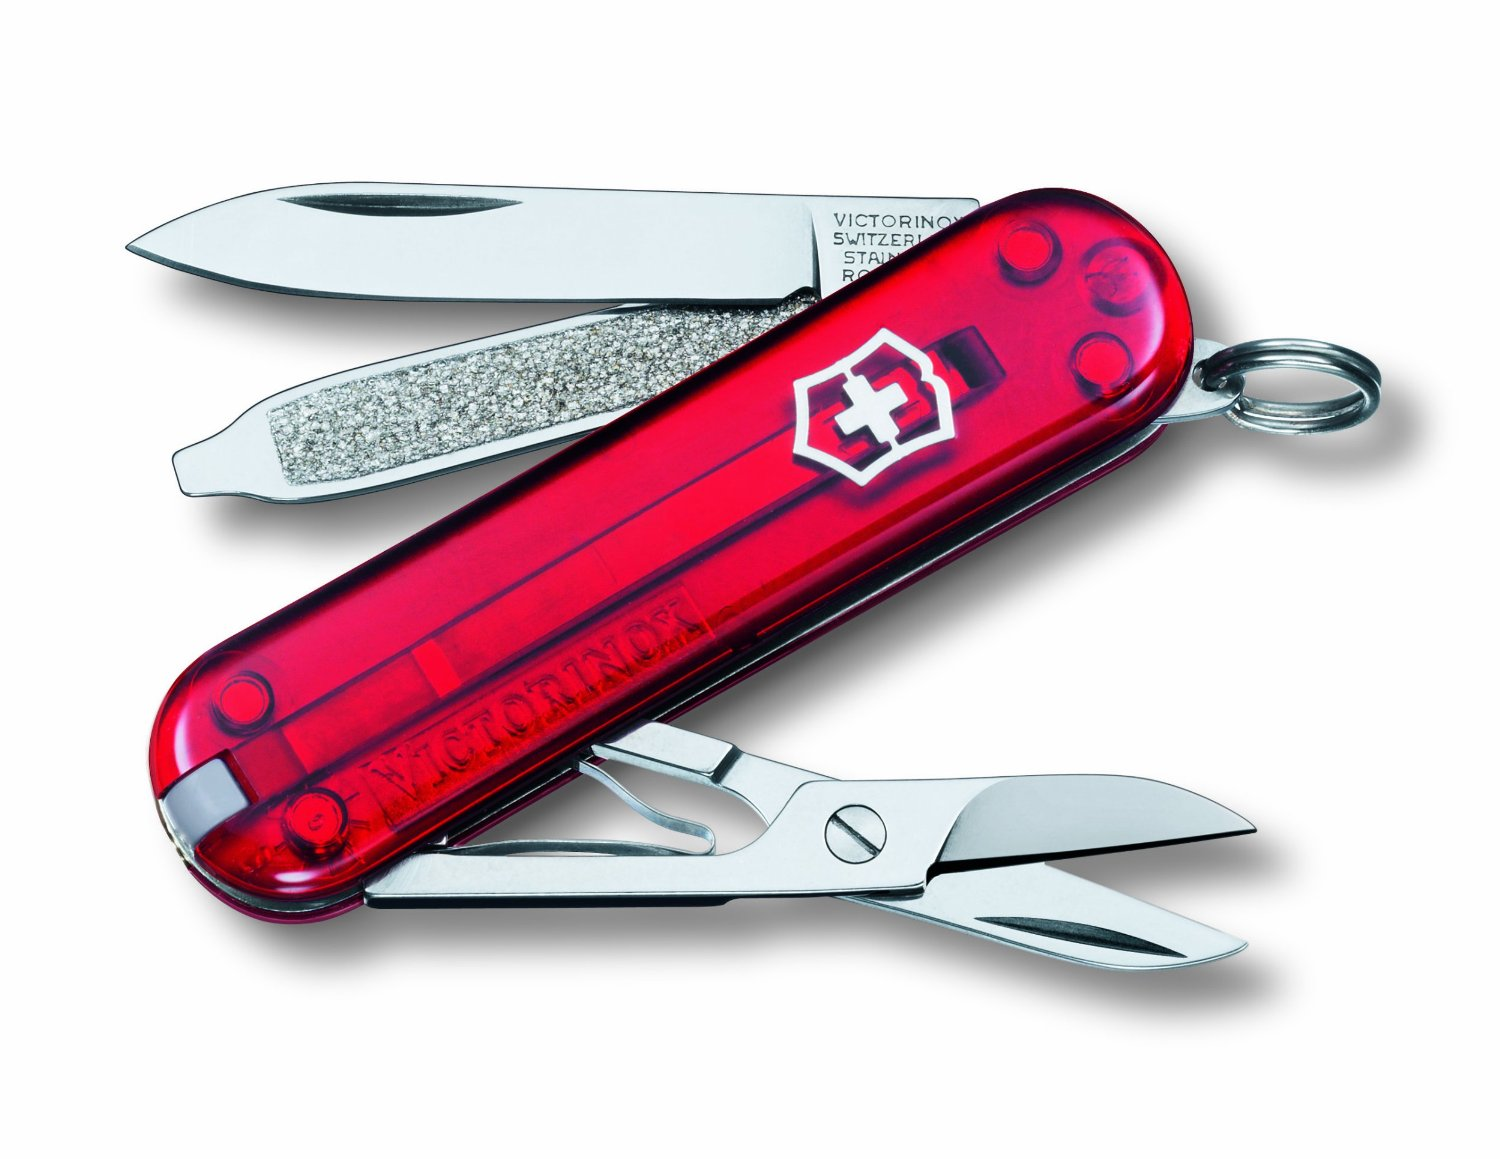 Classic Swiss Army Knife Image